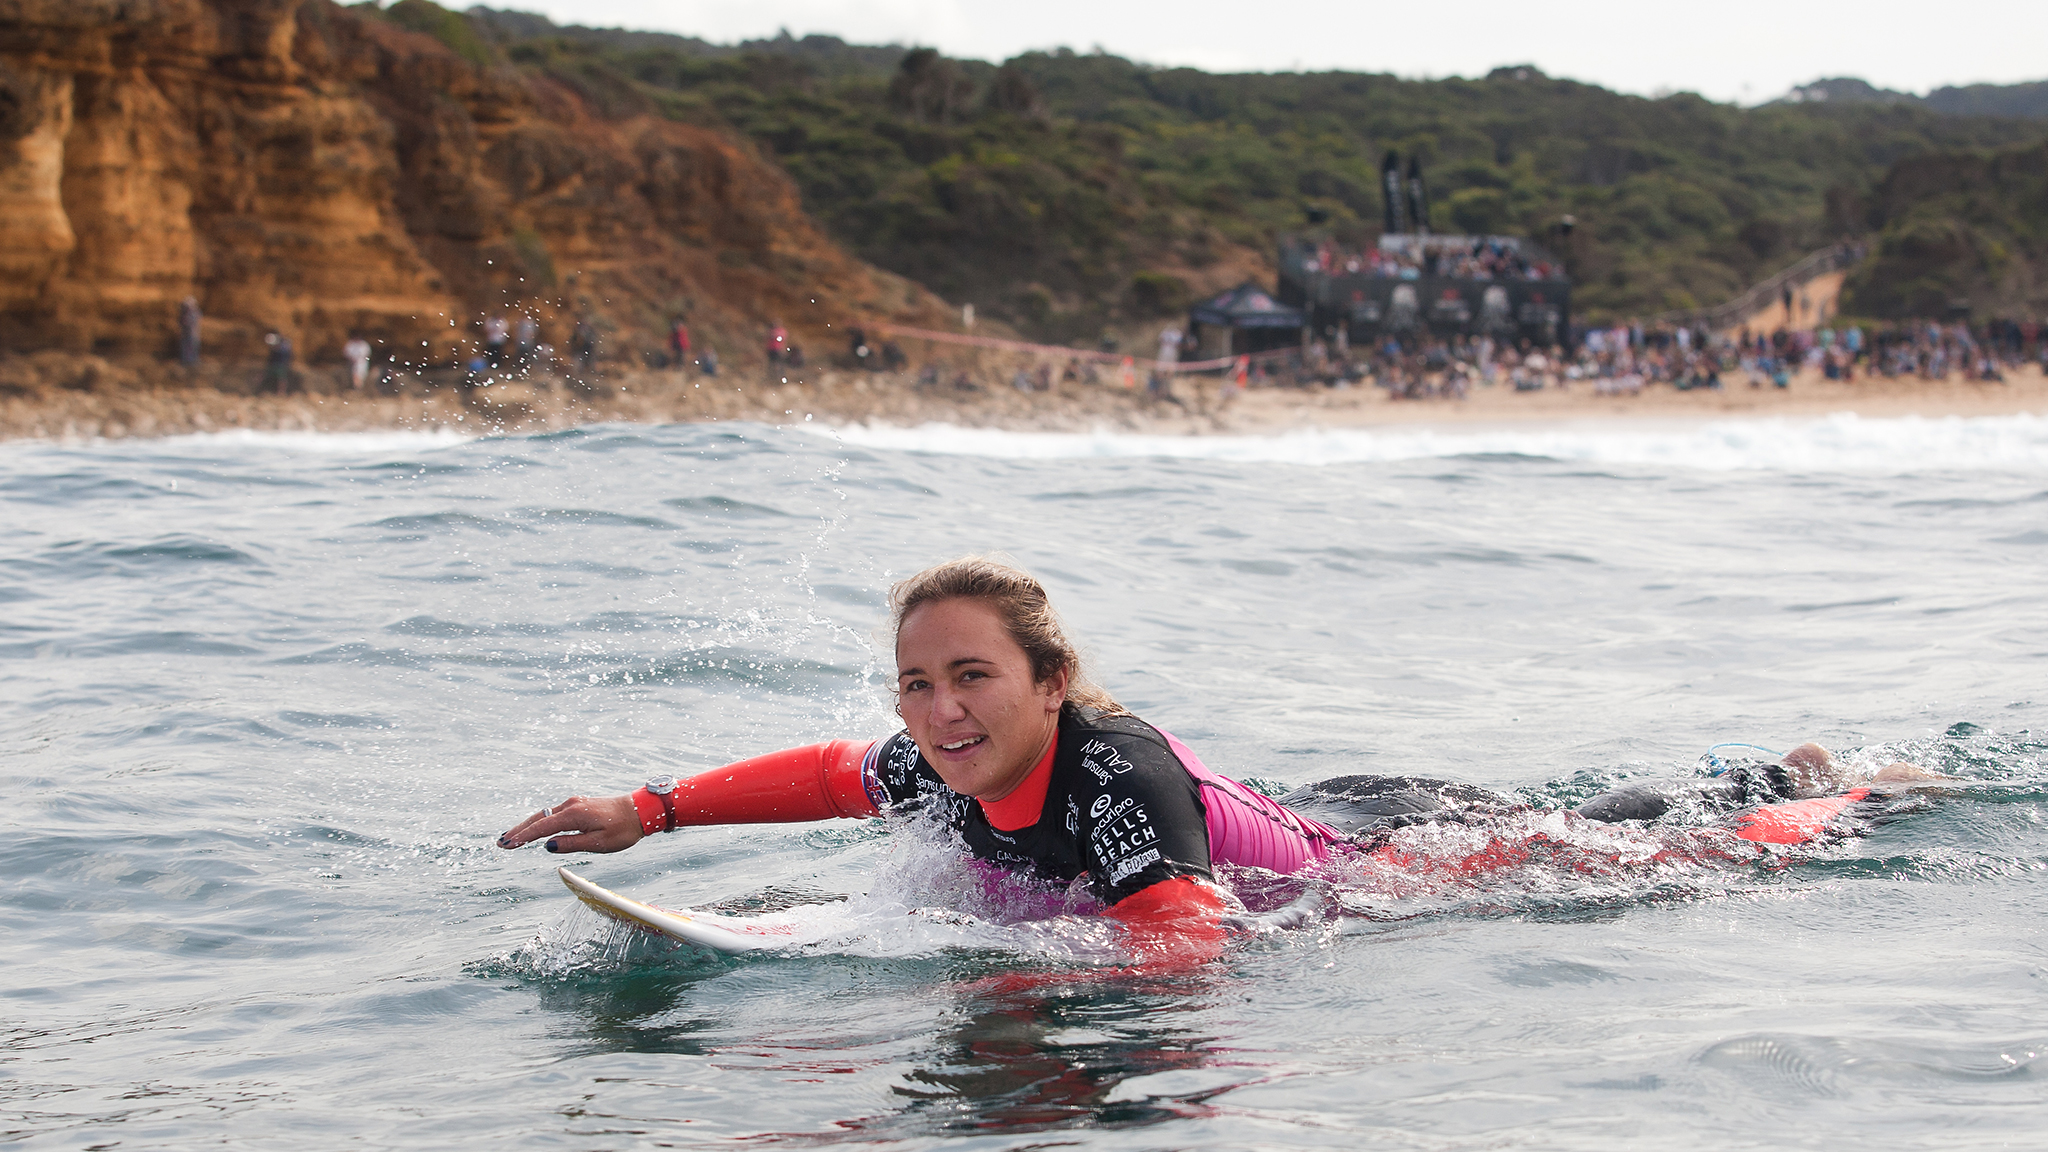 By the time Carissa Moore was 21, she had won two ASP World Titles and was well-funded by sponsors like Nike, Target and Red Bull. The new regime will only empower her further.